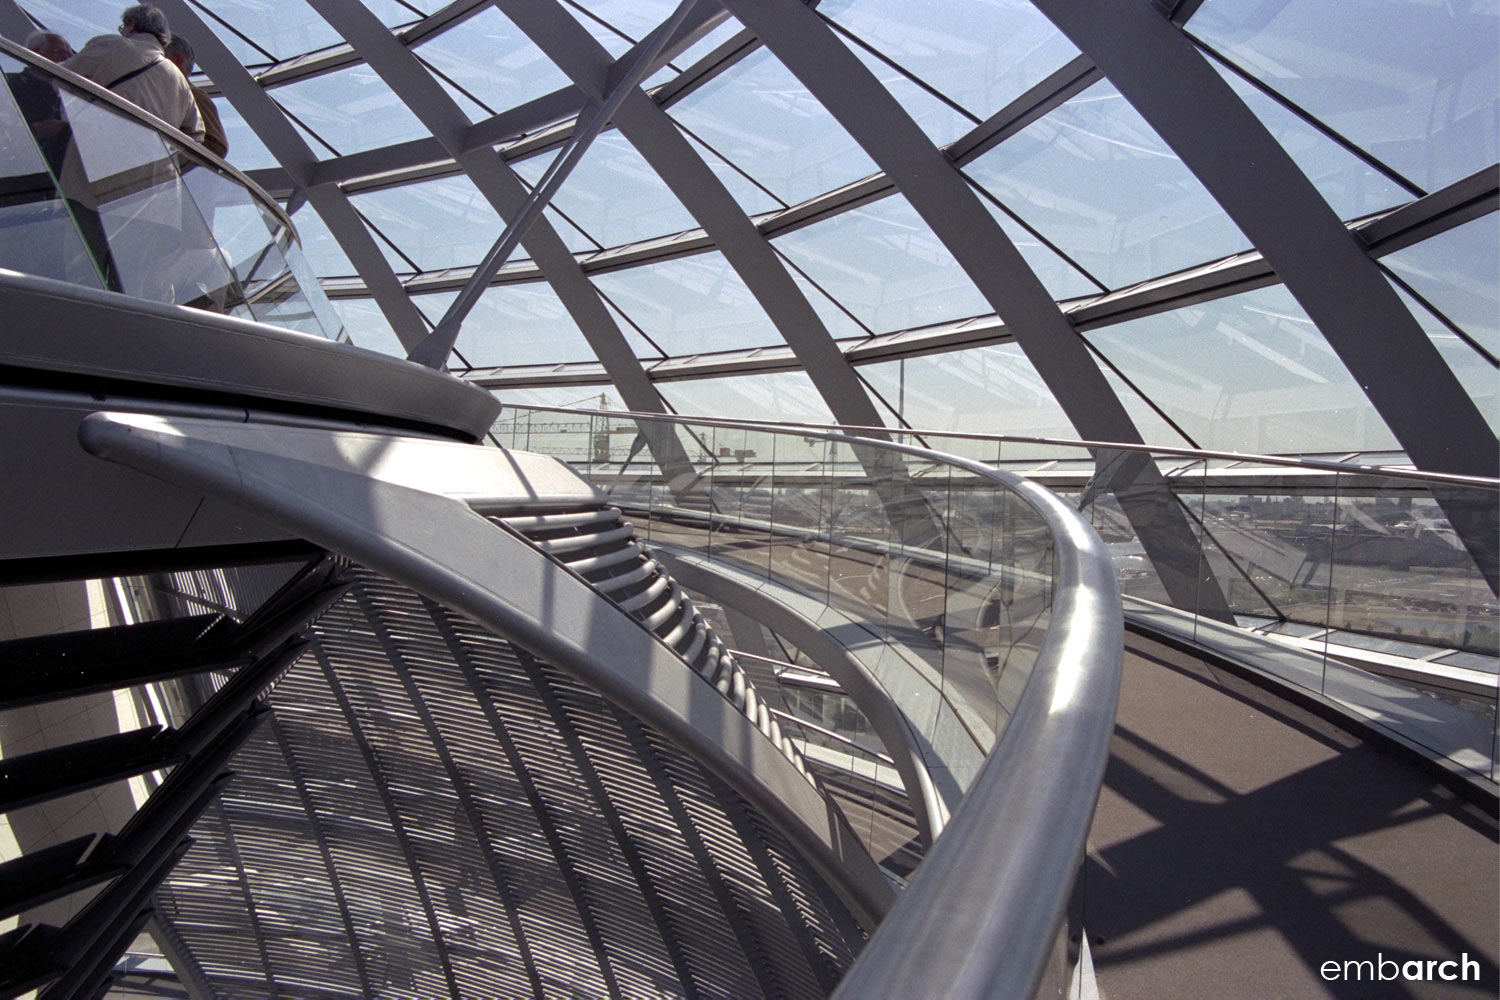 Reichstag Building - dome interior walkway